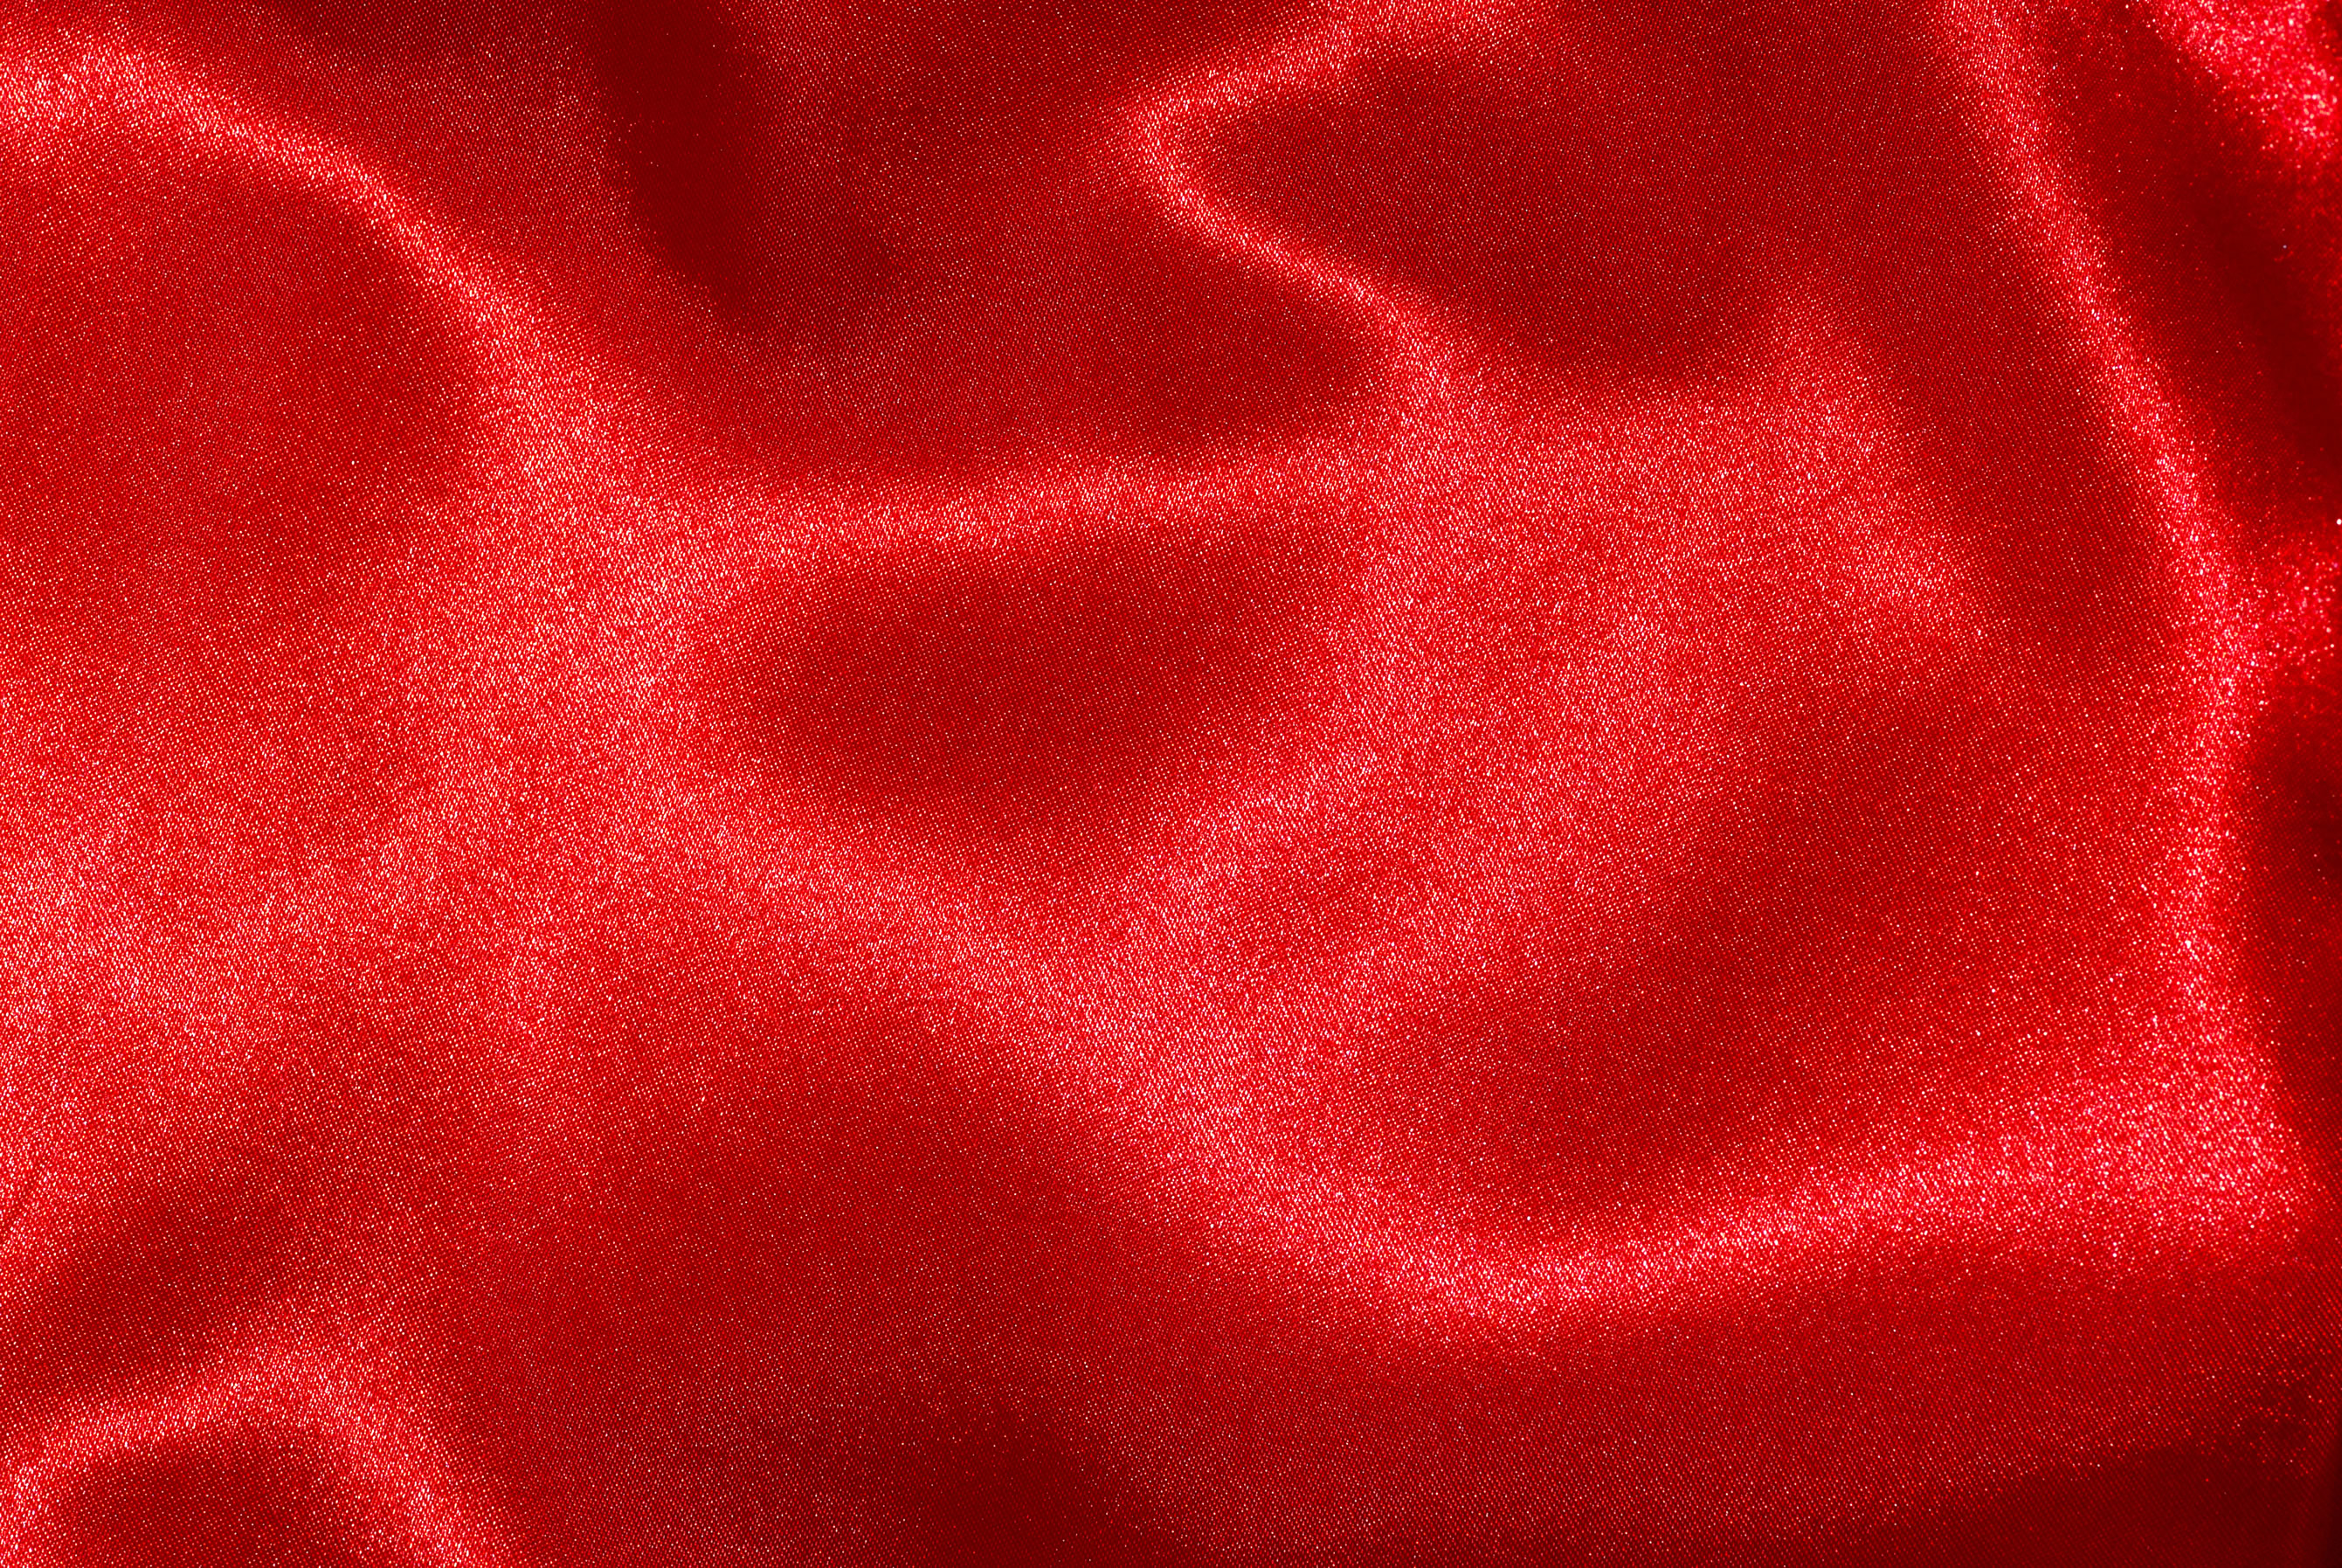 red velvet background texture, red velvet, fabric cloth, texture, background